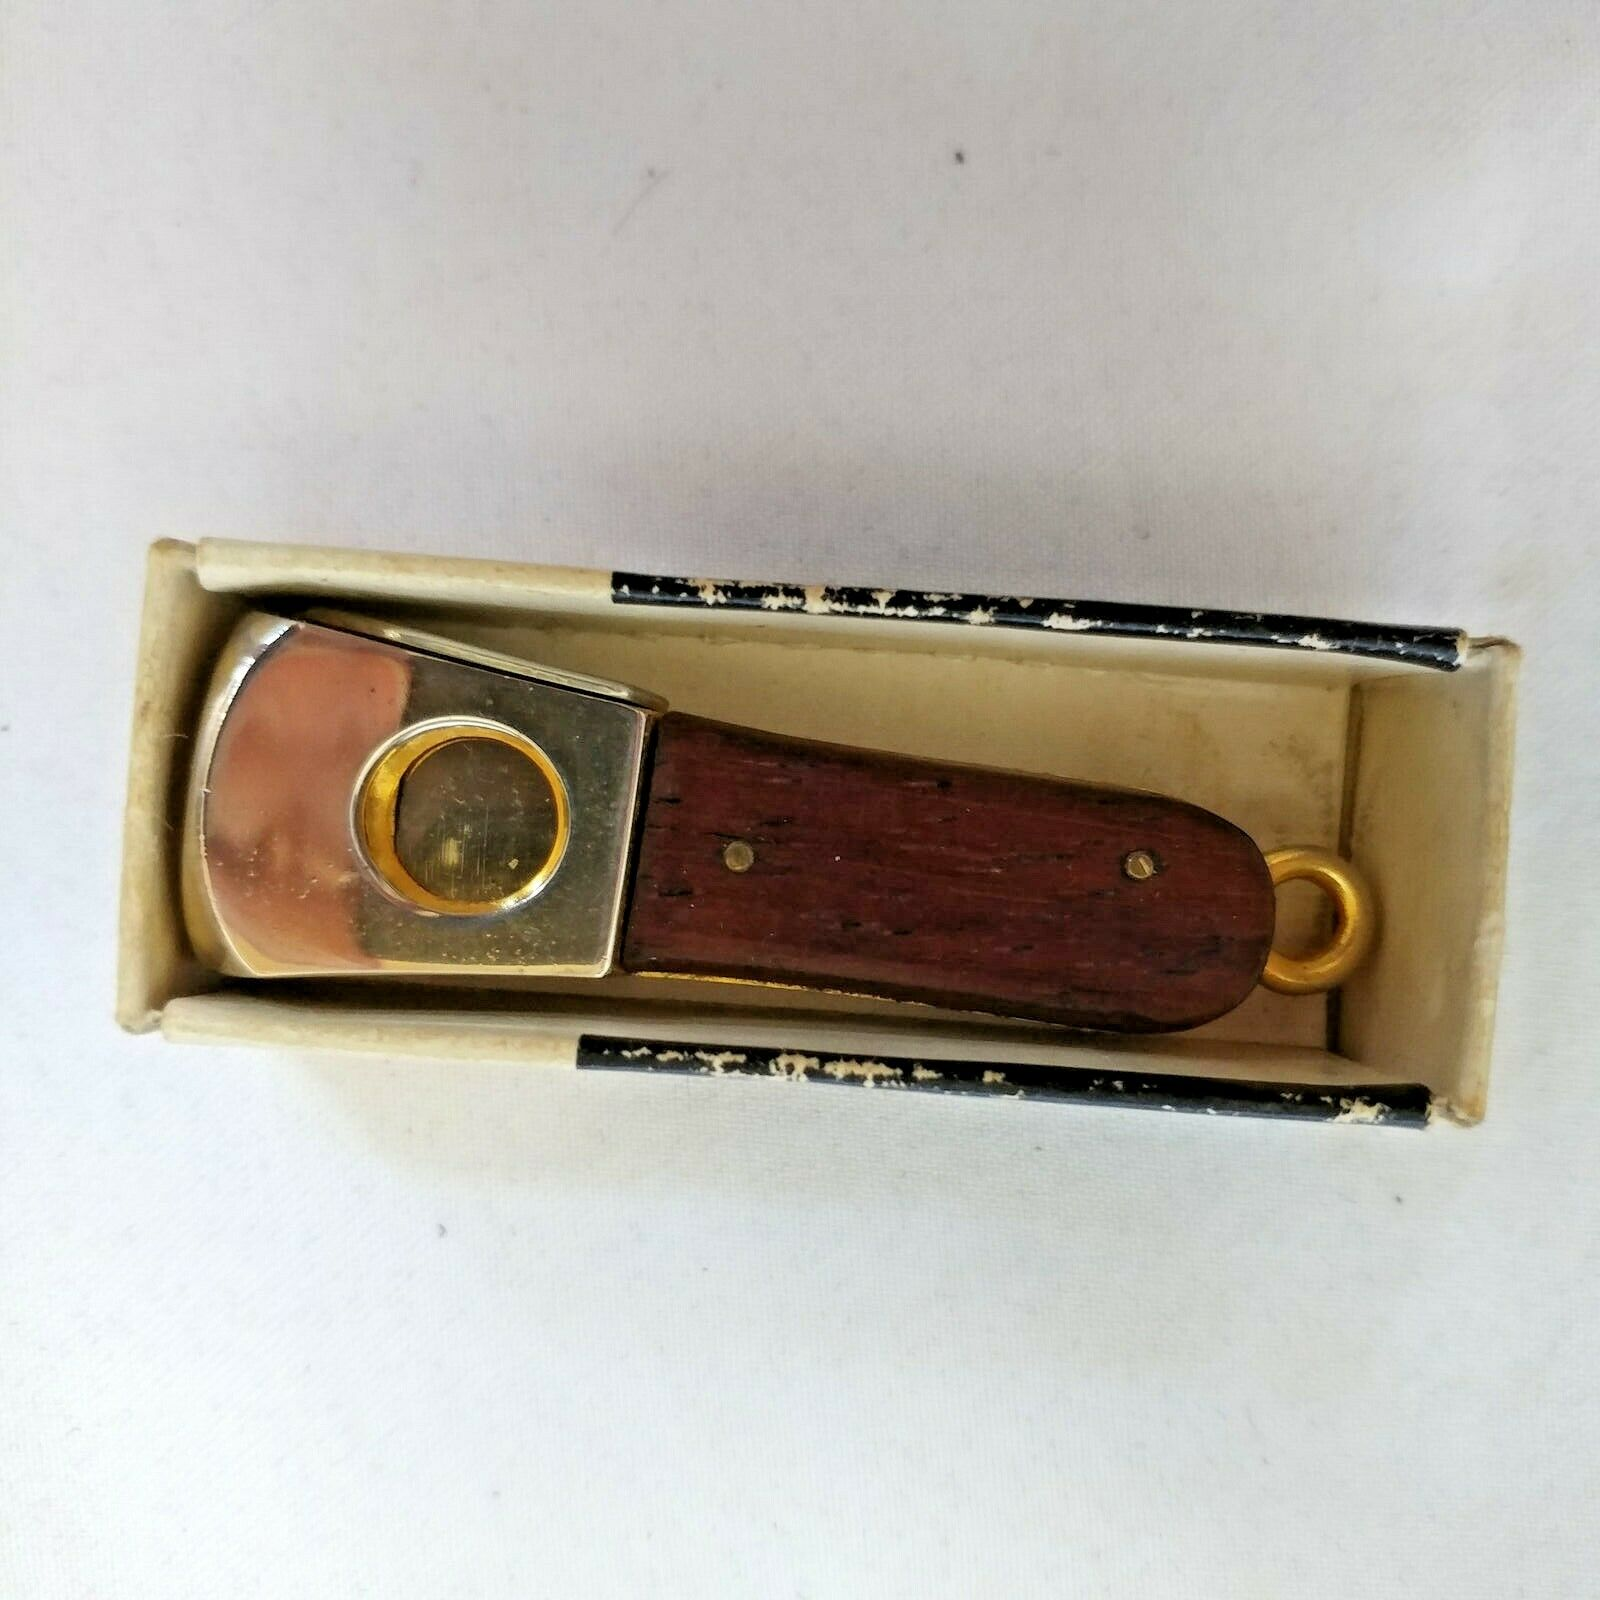 ZIGARREB ABSCNEIDER | SMALL CIGAR CUTTER | GERMAN MADE